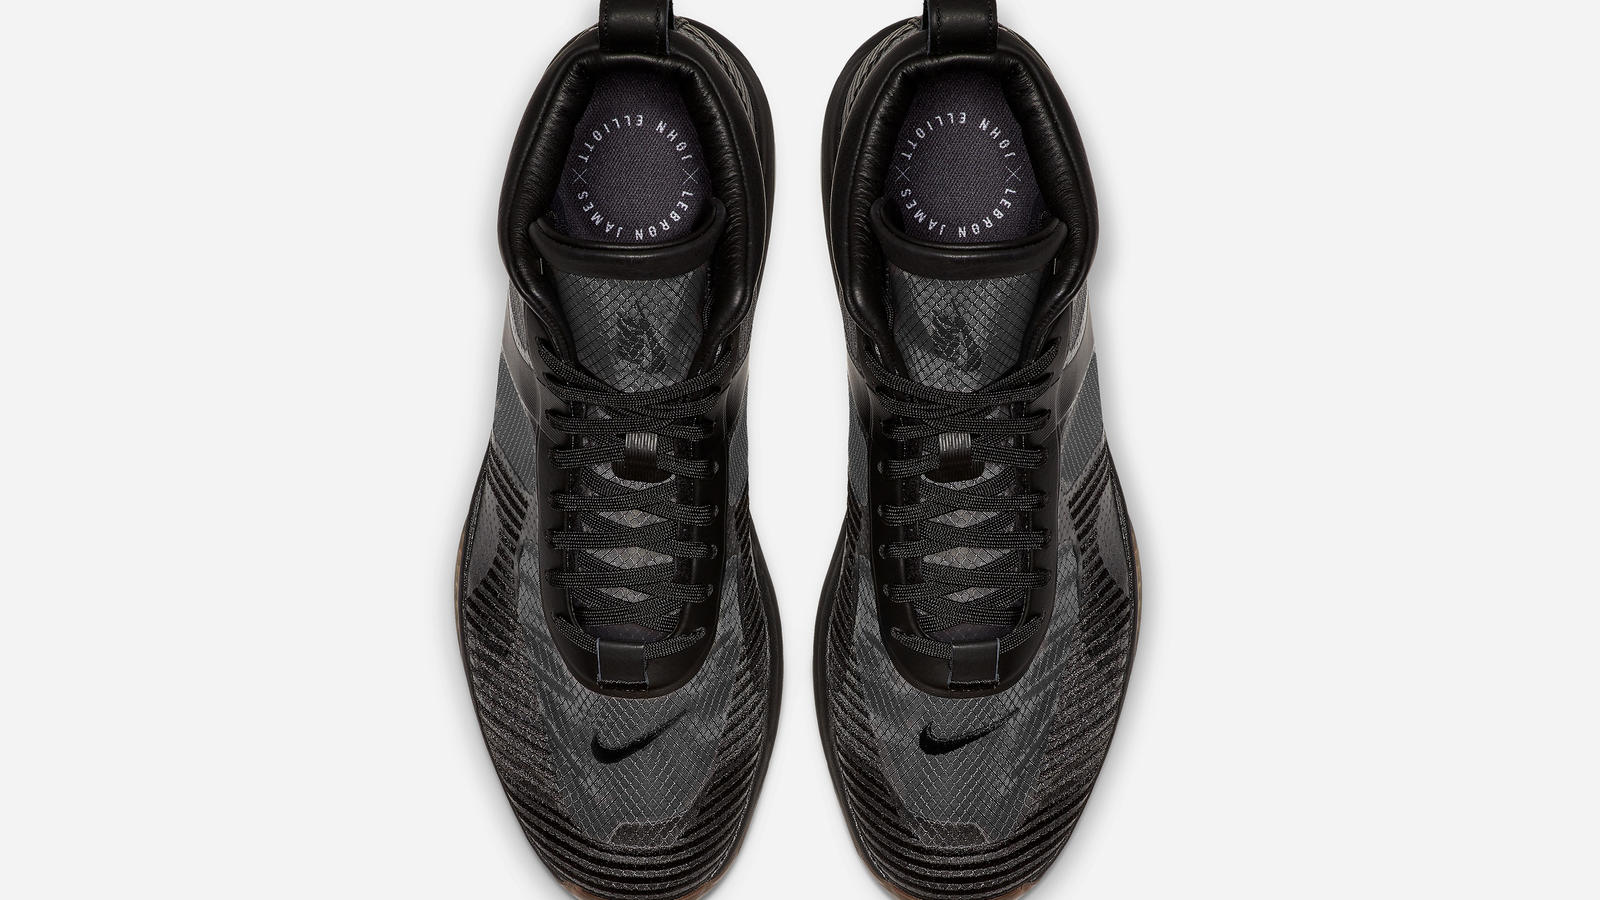 LeBron James x John Elliot Icon QS (Black) 6